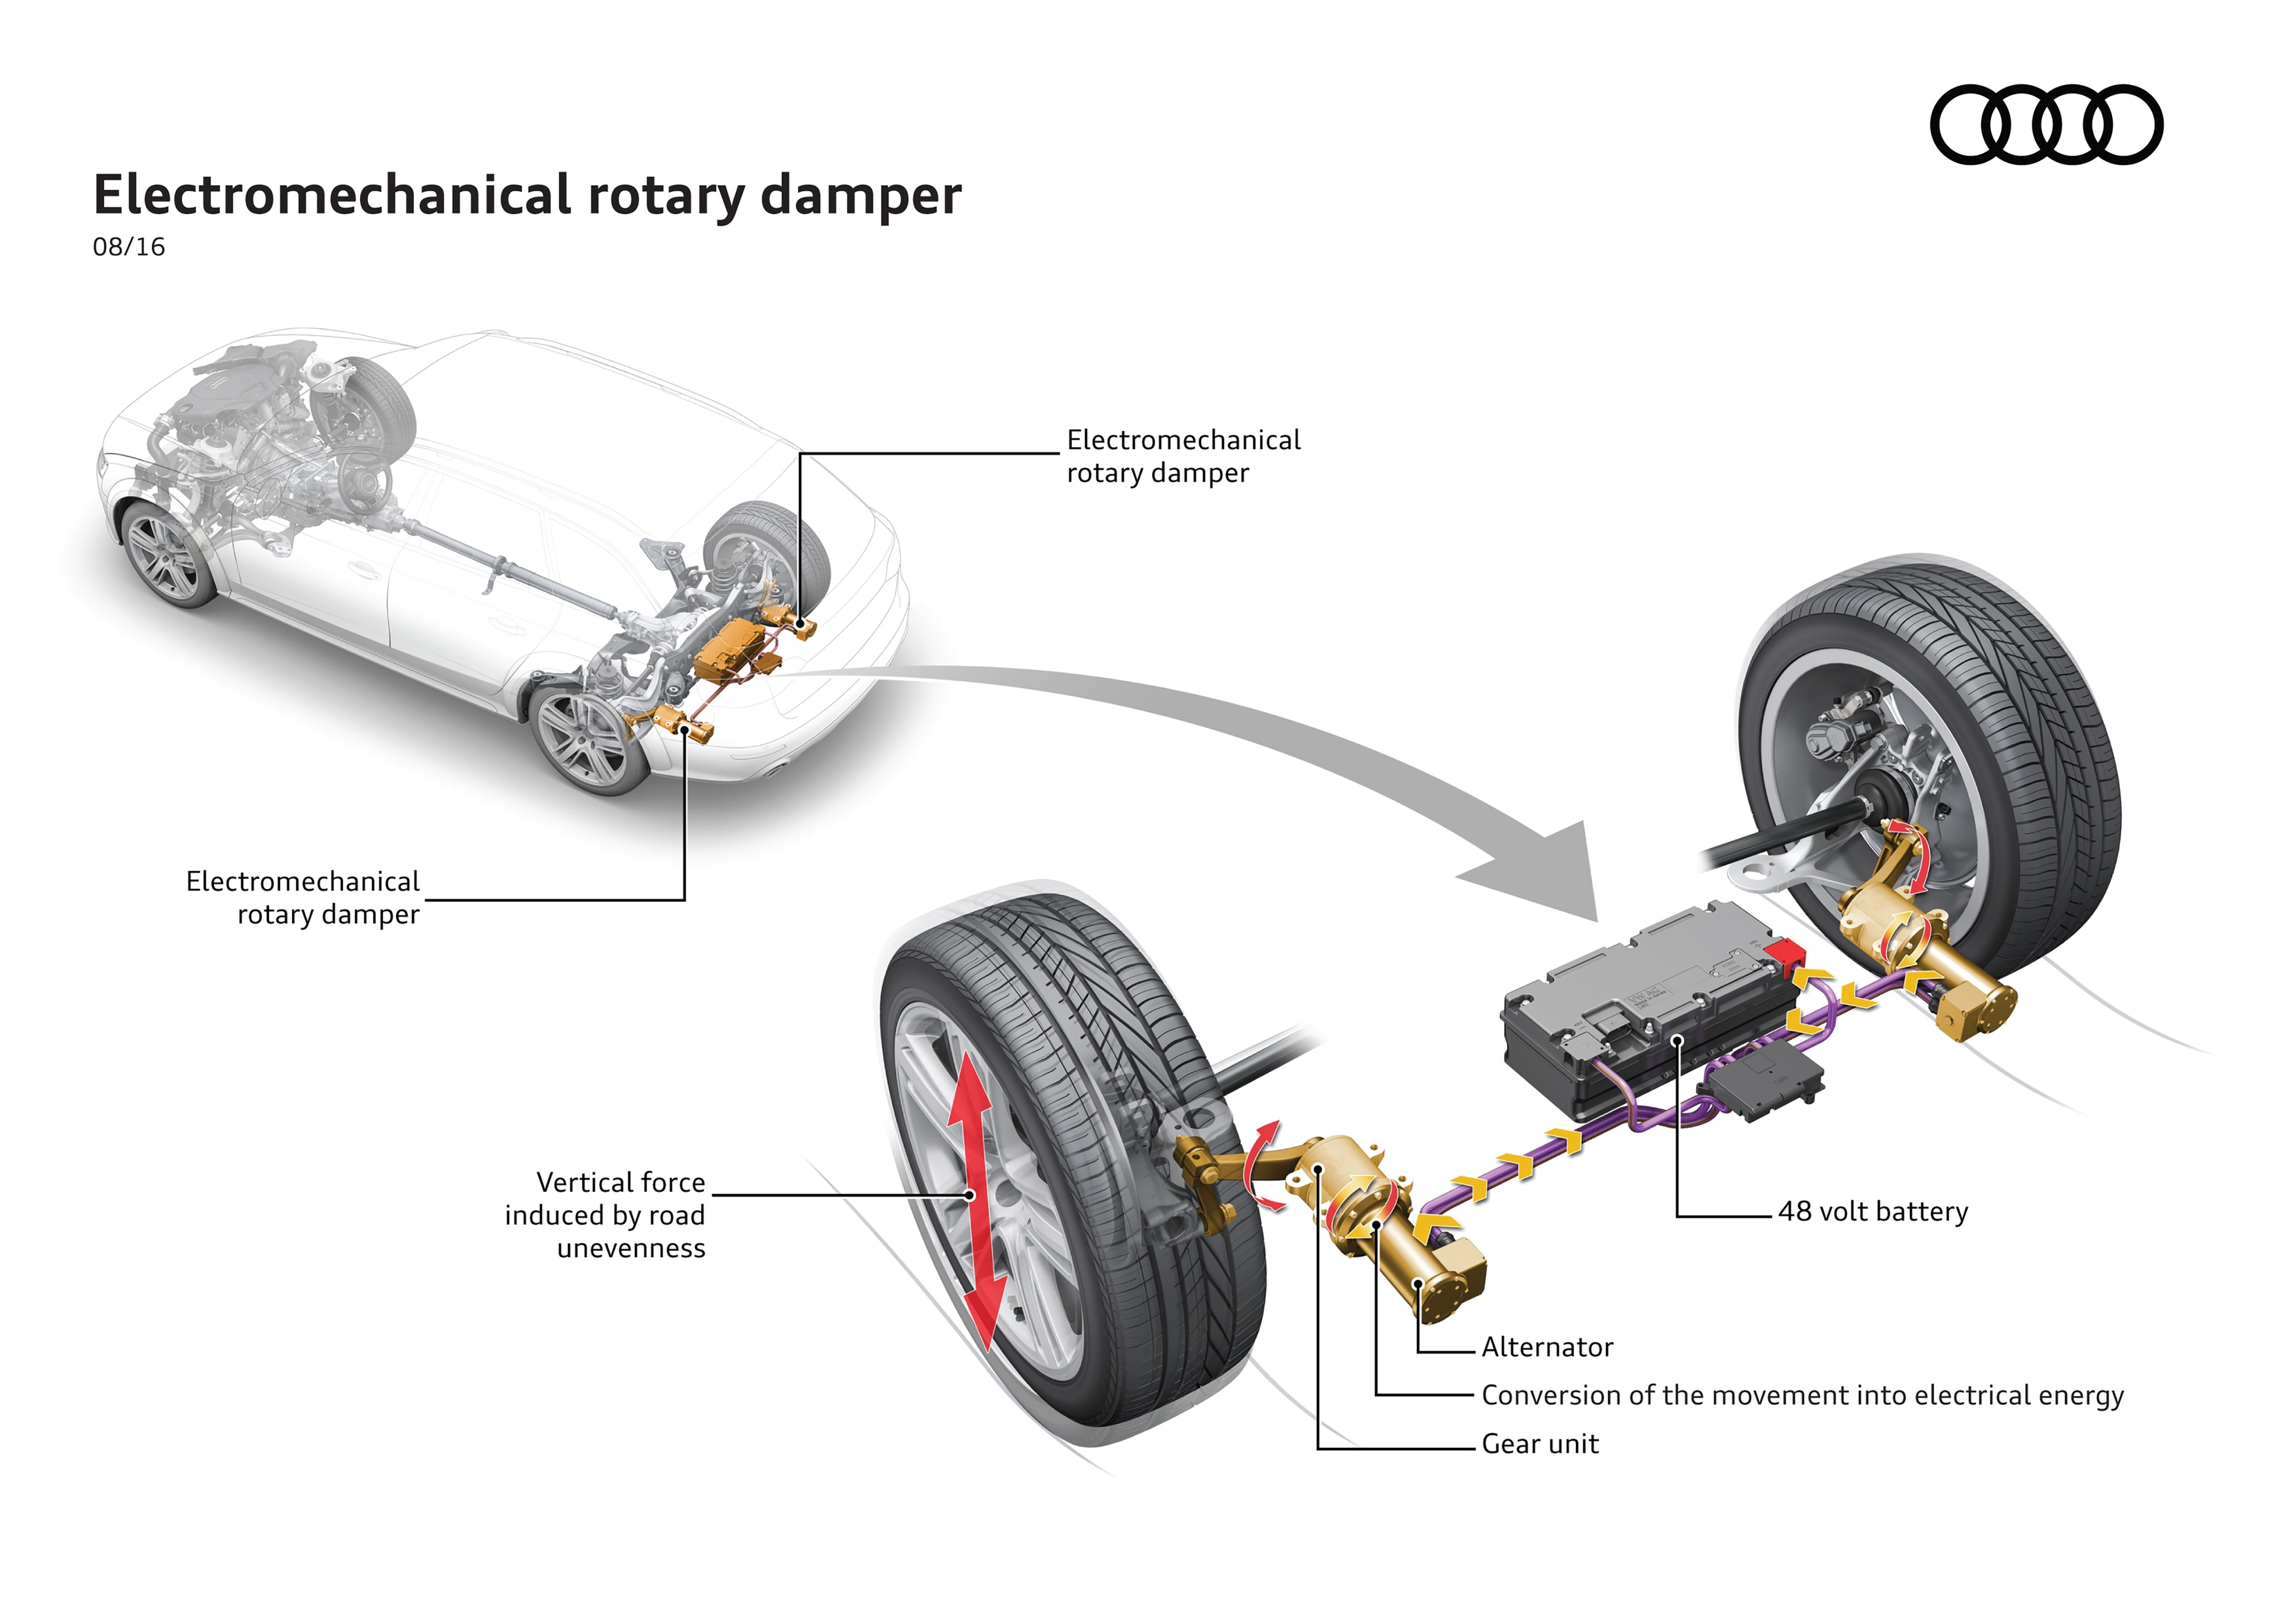 Audi Electromechanical rotary damper| Source: Audi